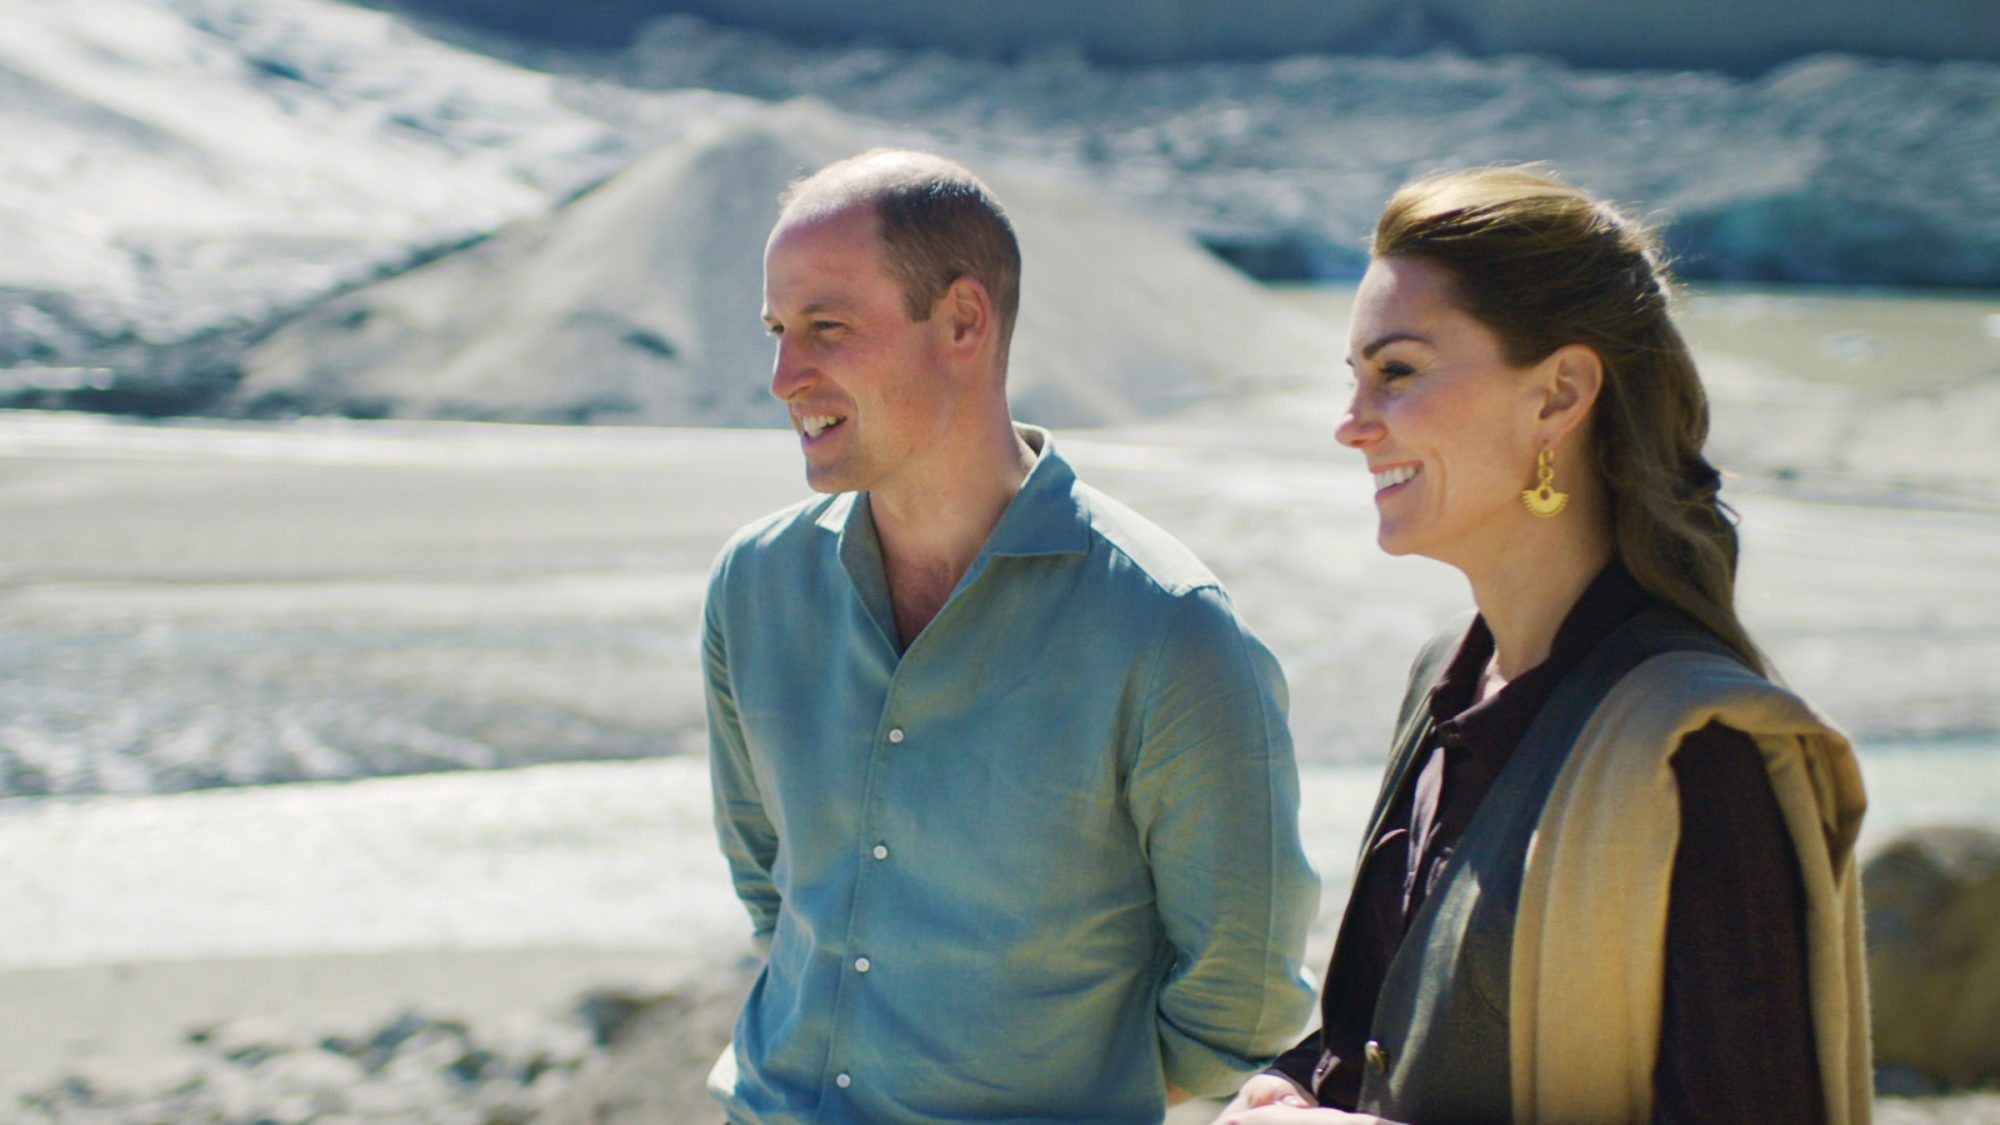 HRH Duke and Duchess of Cambridge in the Hindu Kush Range, Pakistan